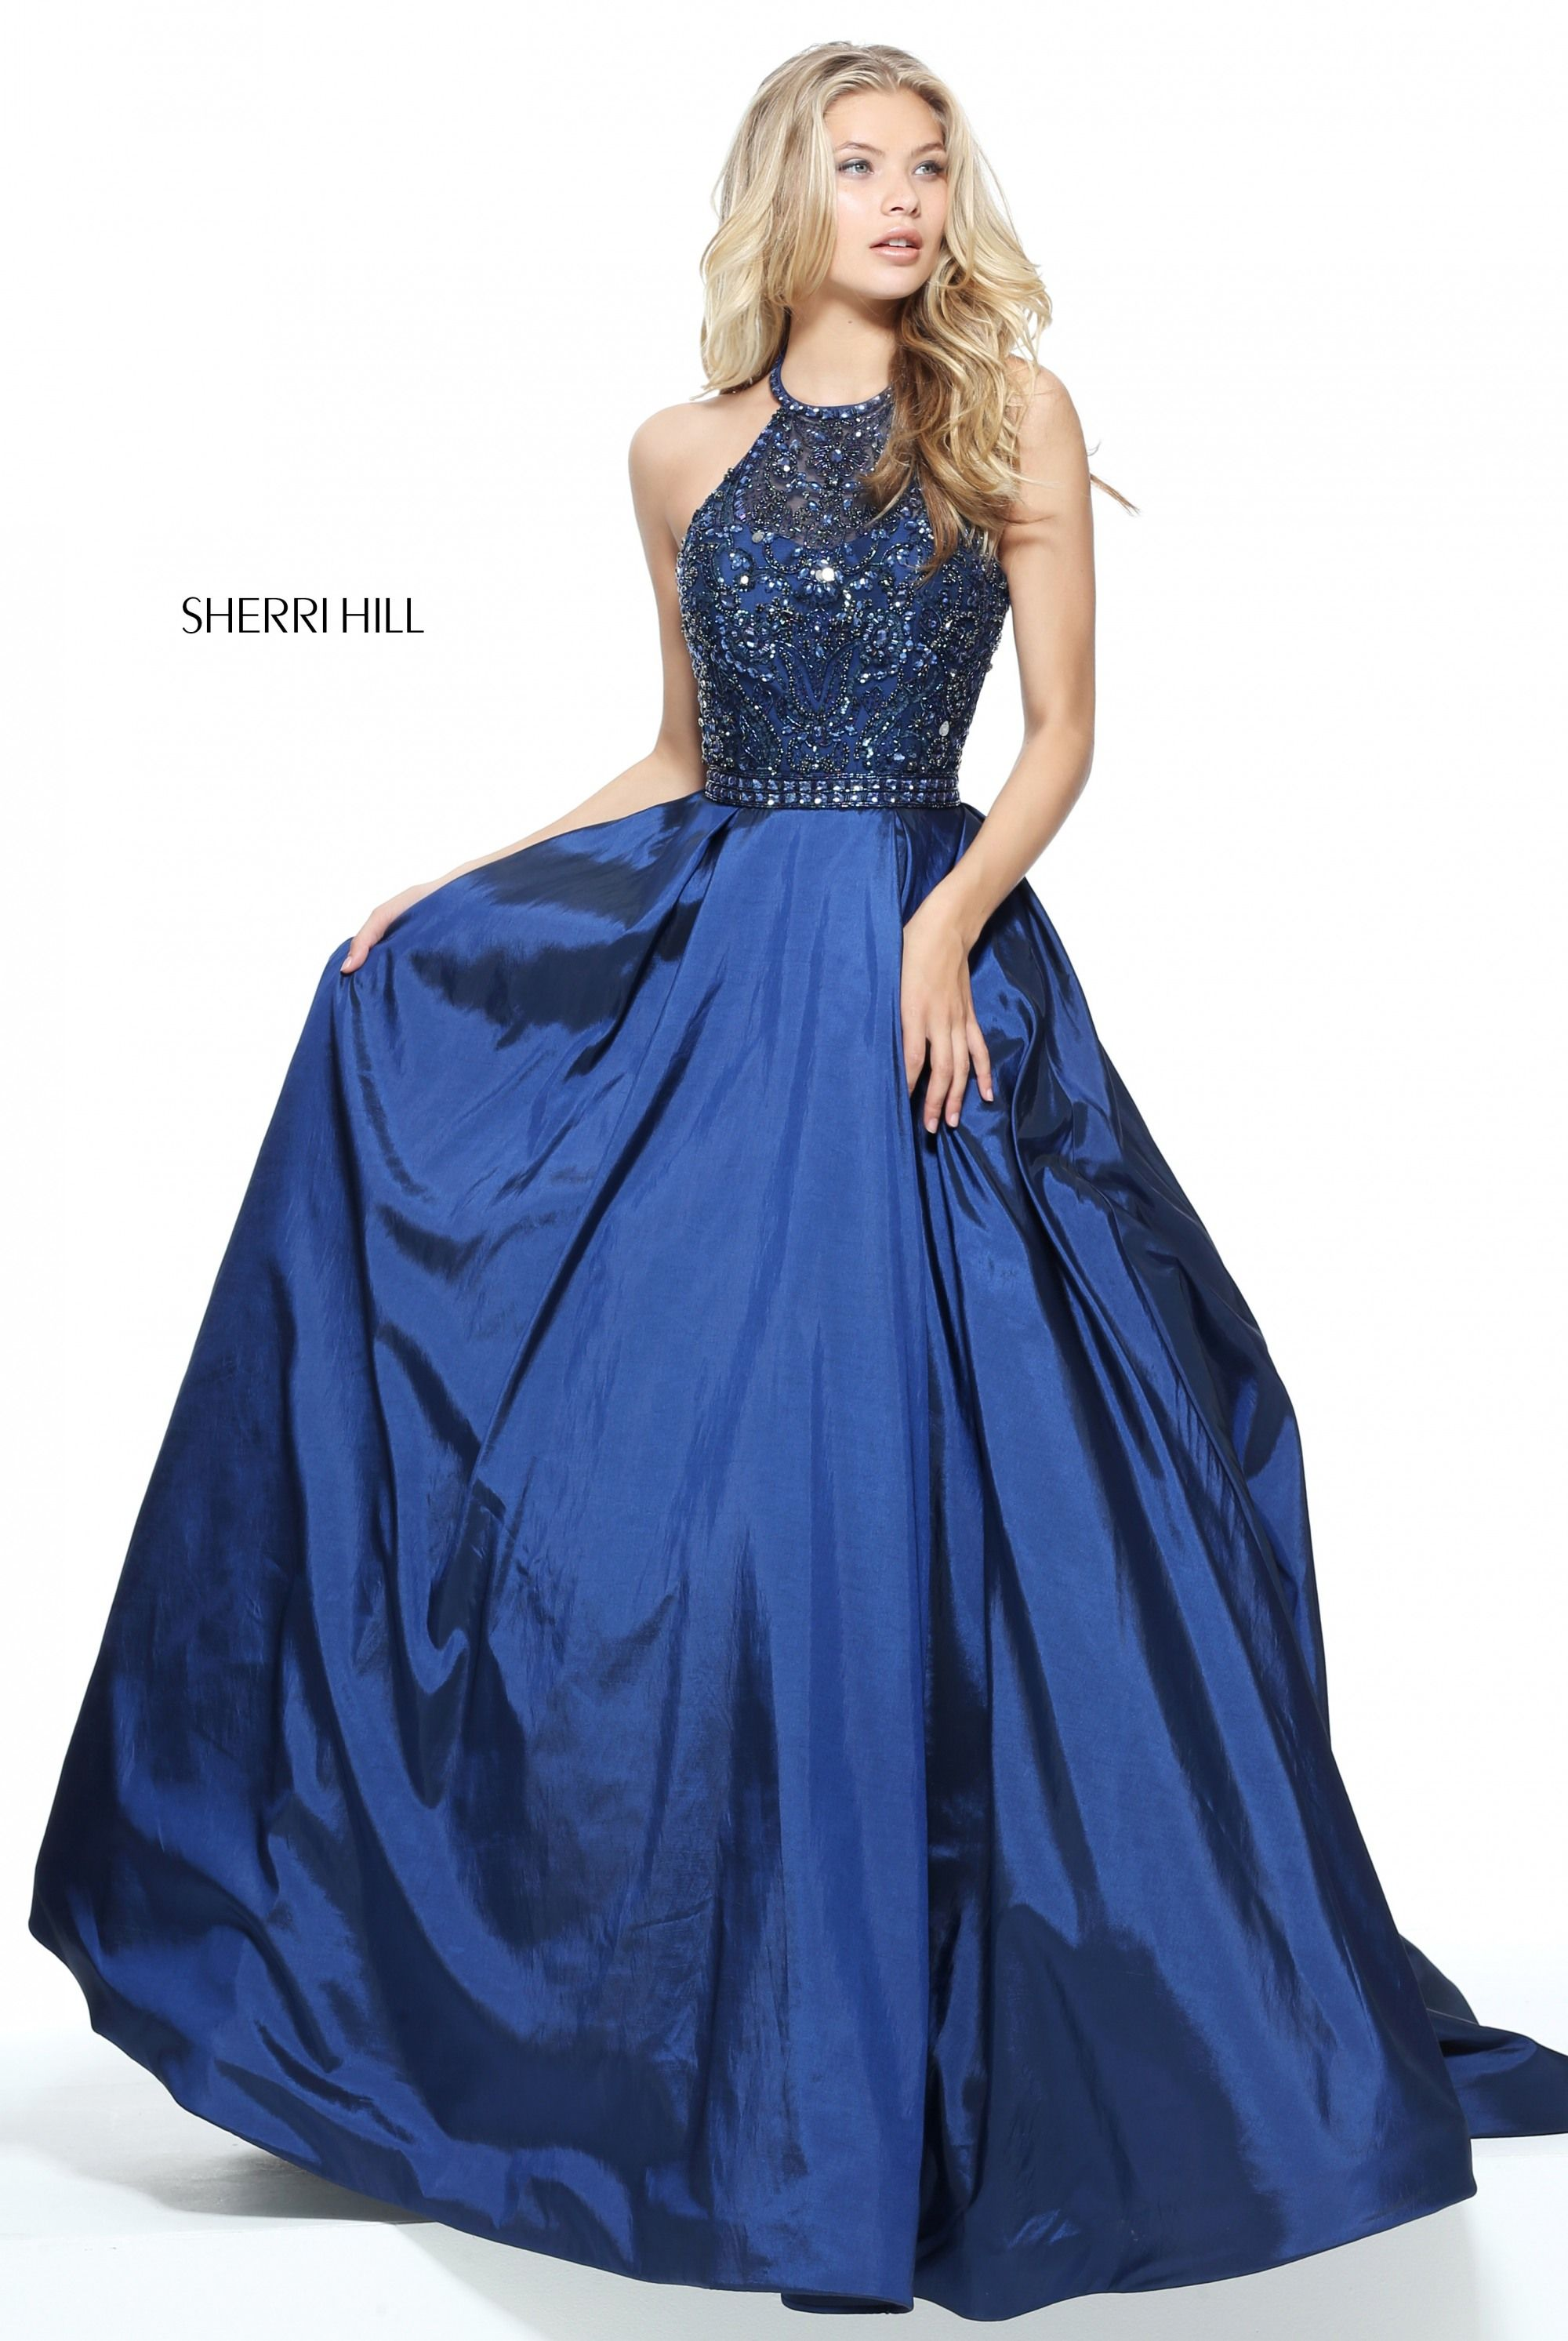 a71d24979a2 Sherri Hill 51242 - International Prom Association